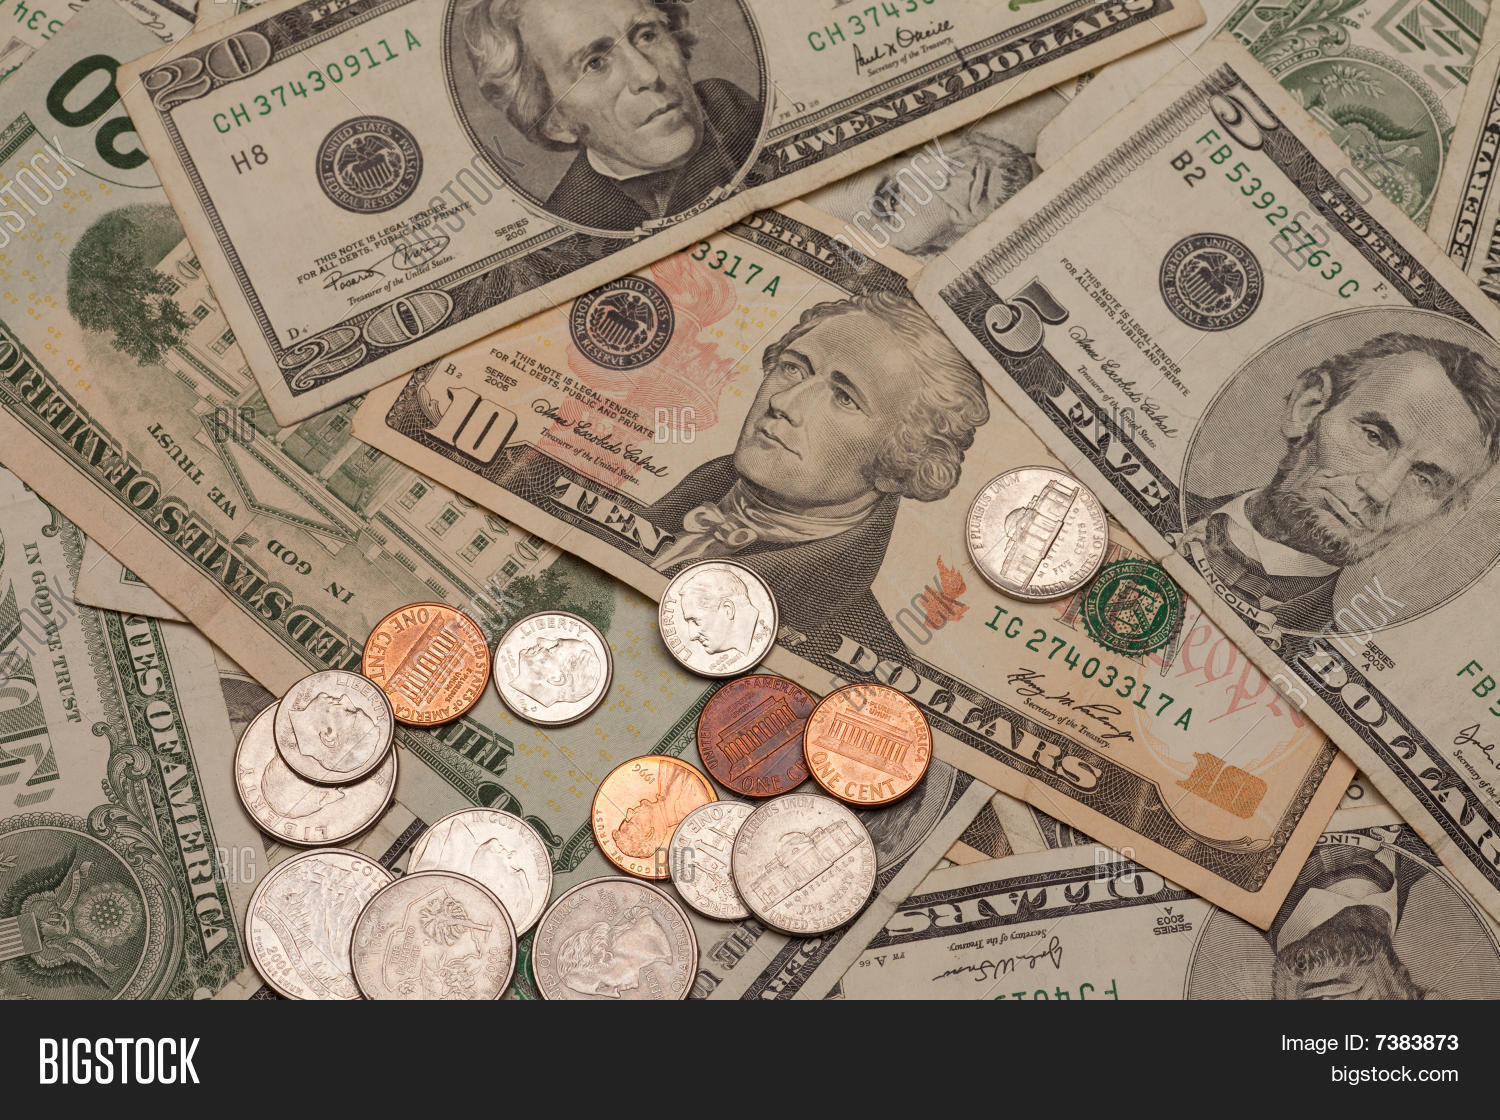 United States Currency Image Photo